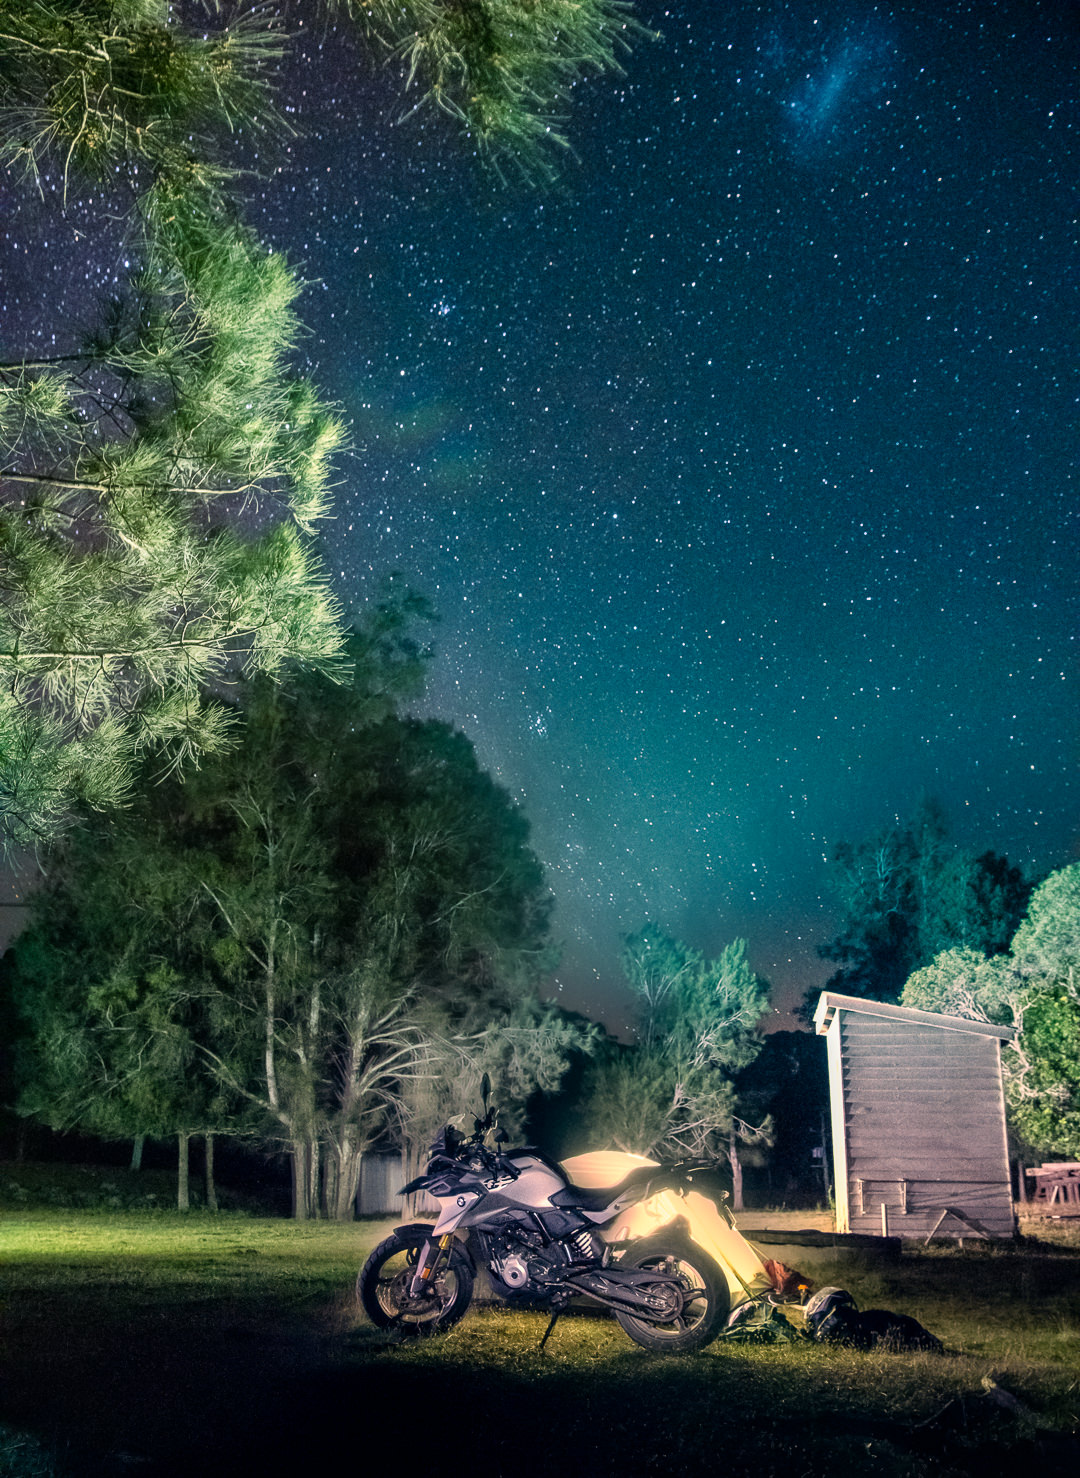 ADV Bike BMW G310GS parked outside a tent in a camp spot in NSW, Australia. Photograph by Joseph Byford.